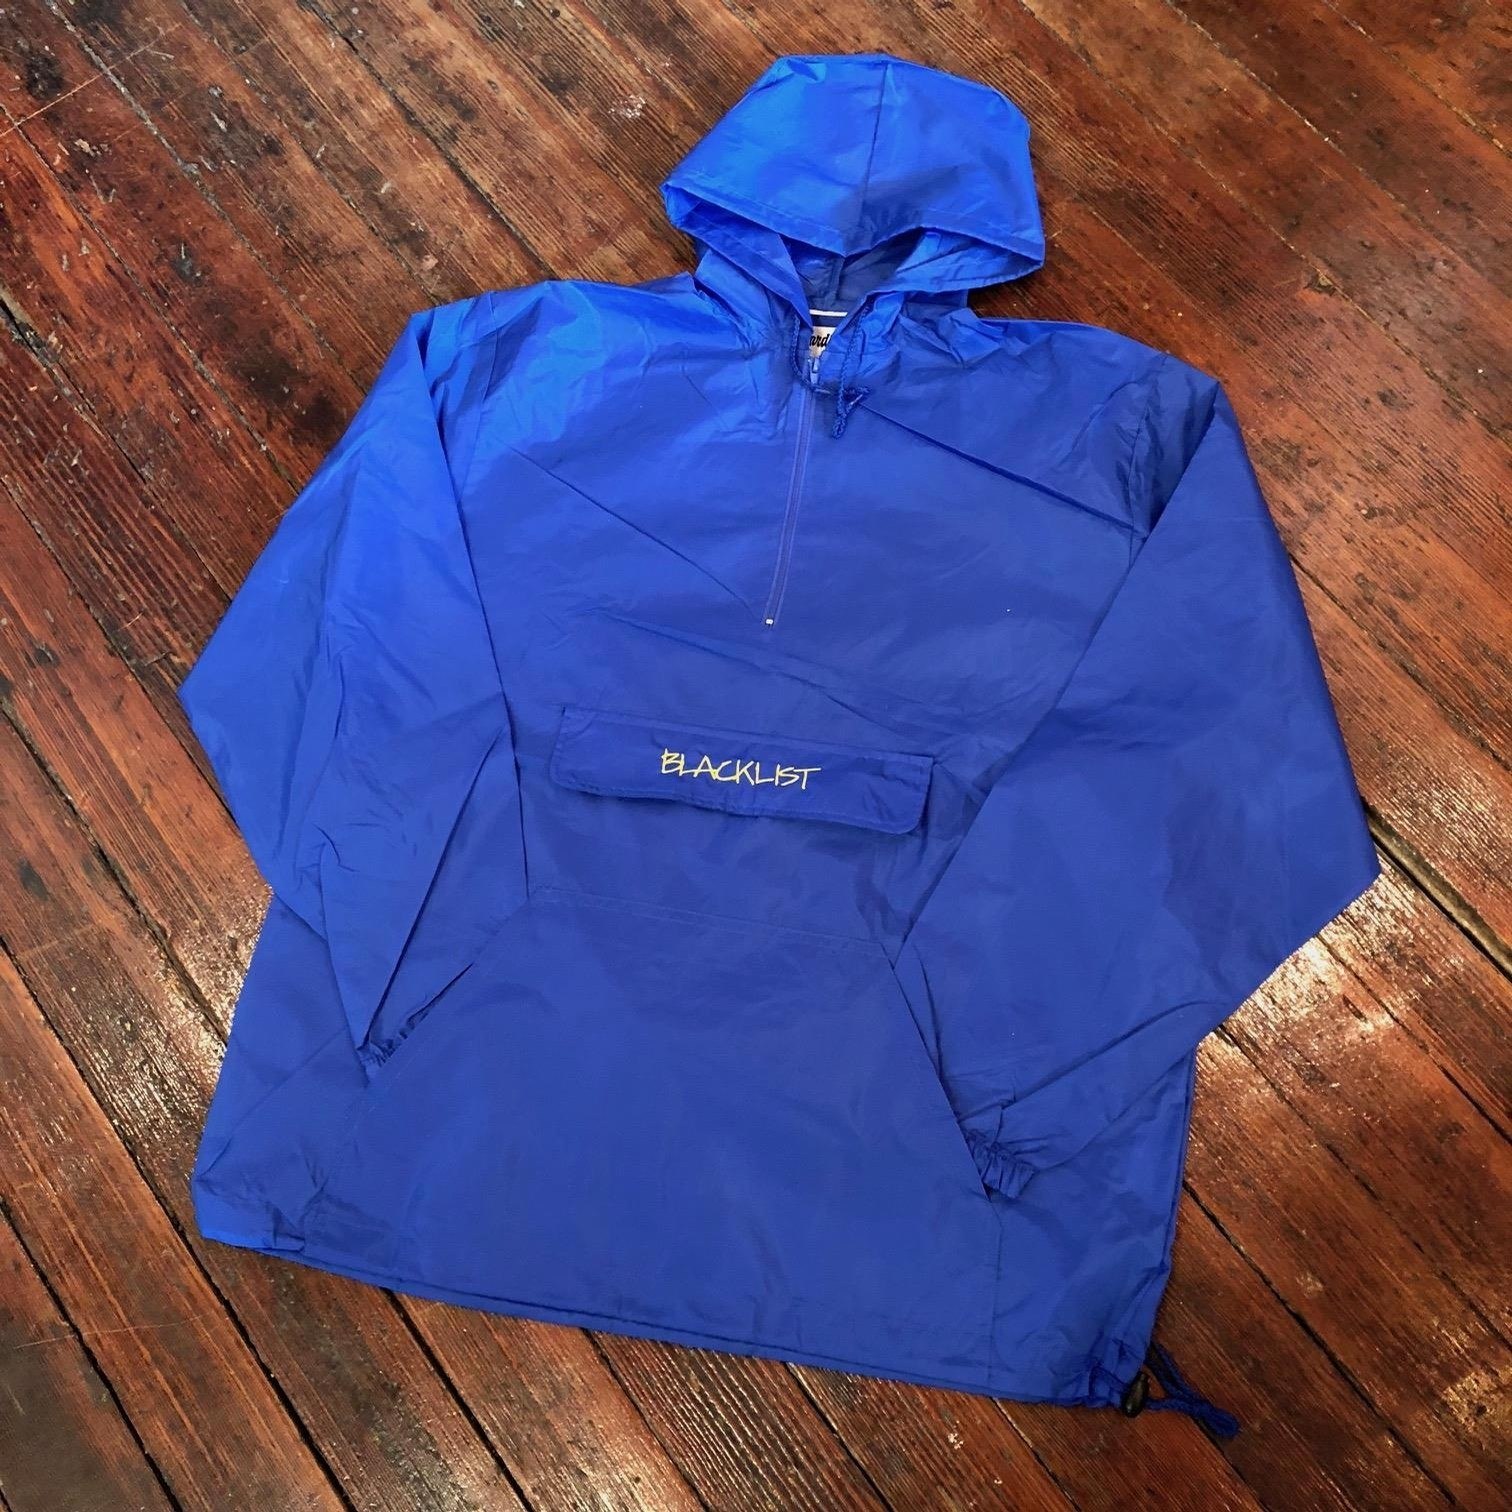 EMBROIDERED BLACKLISTRIGHTE LOGO PACKABLE ANORAK (ROYAL)